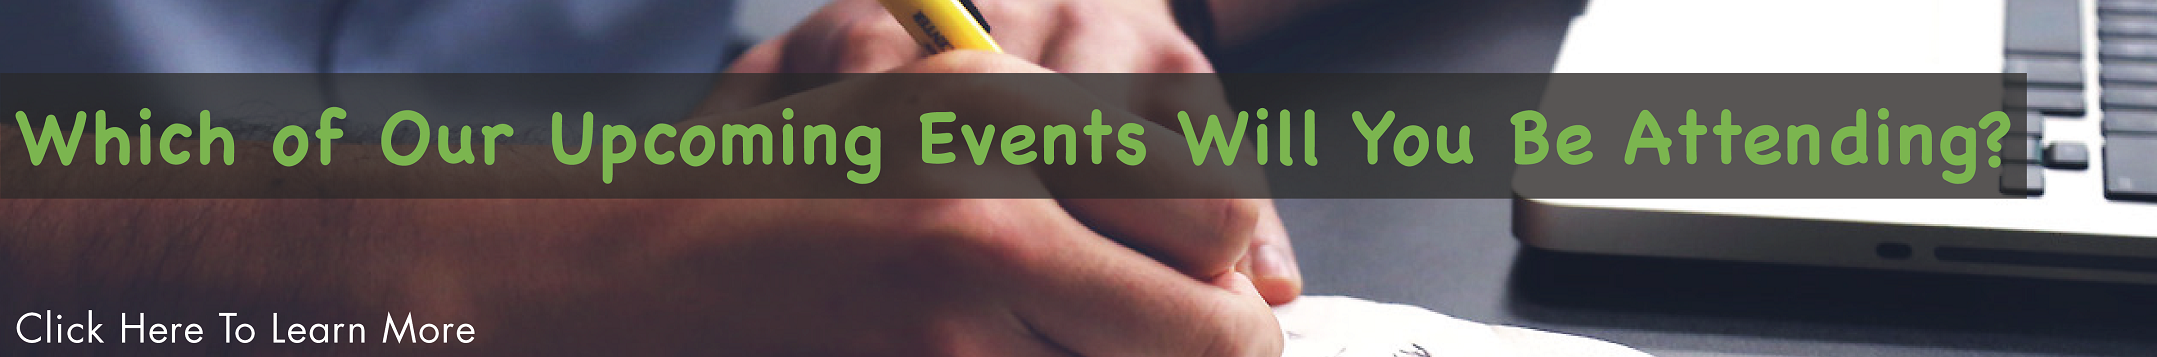 Evidence Based Practice Events